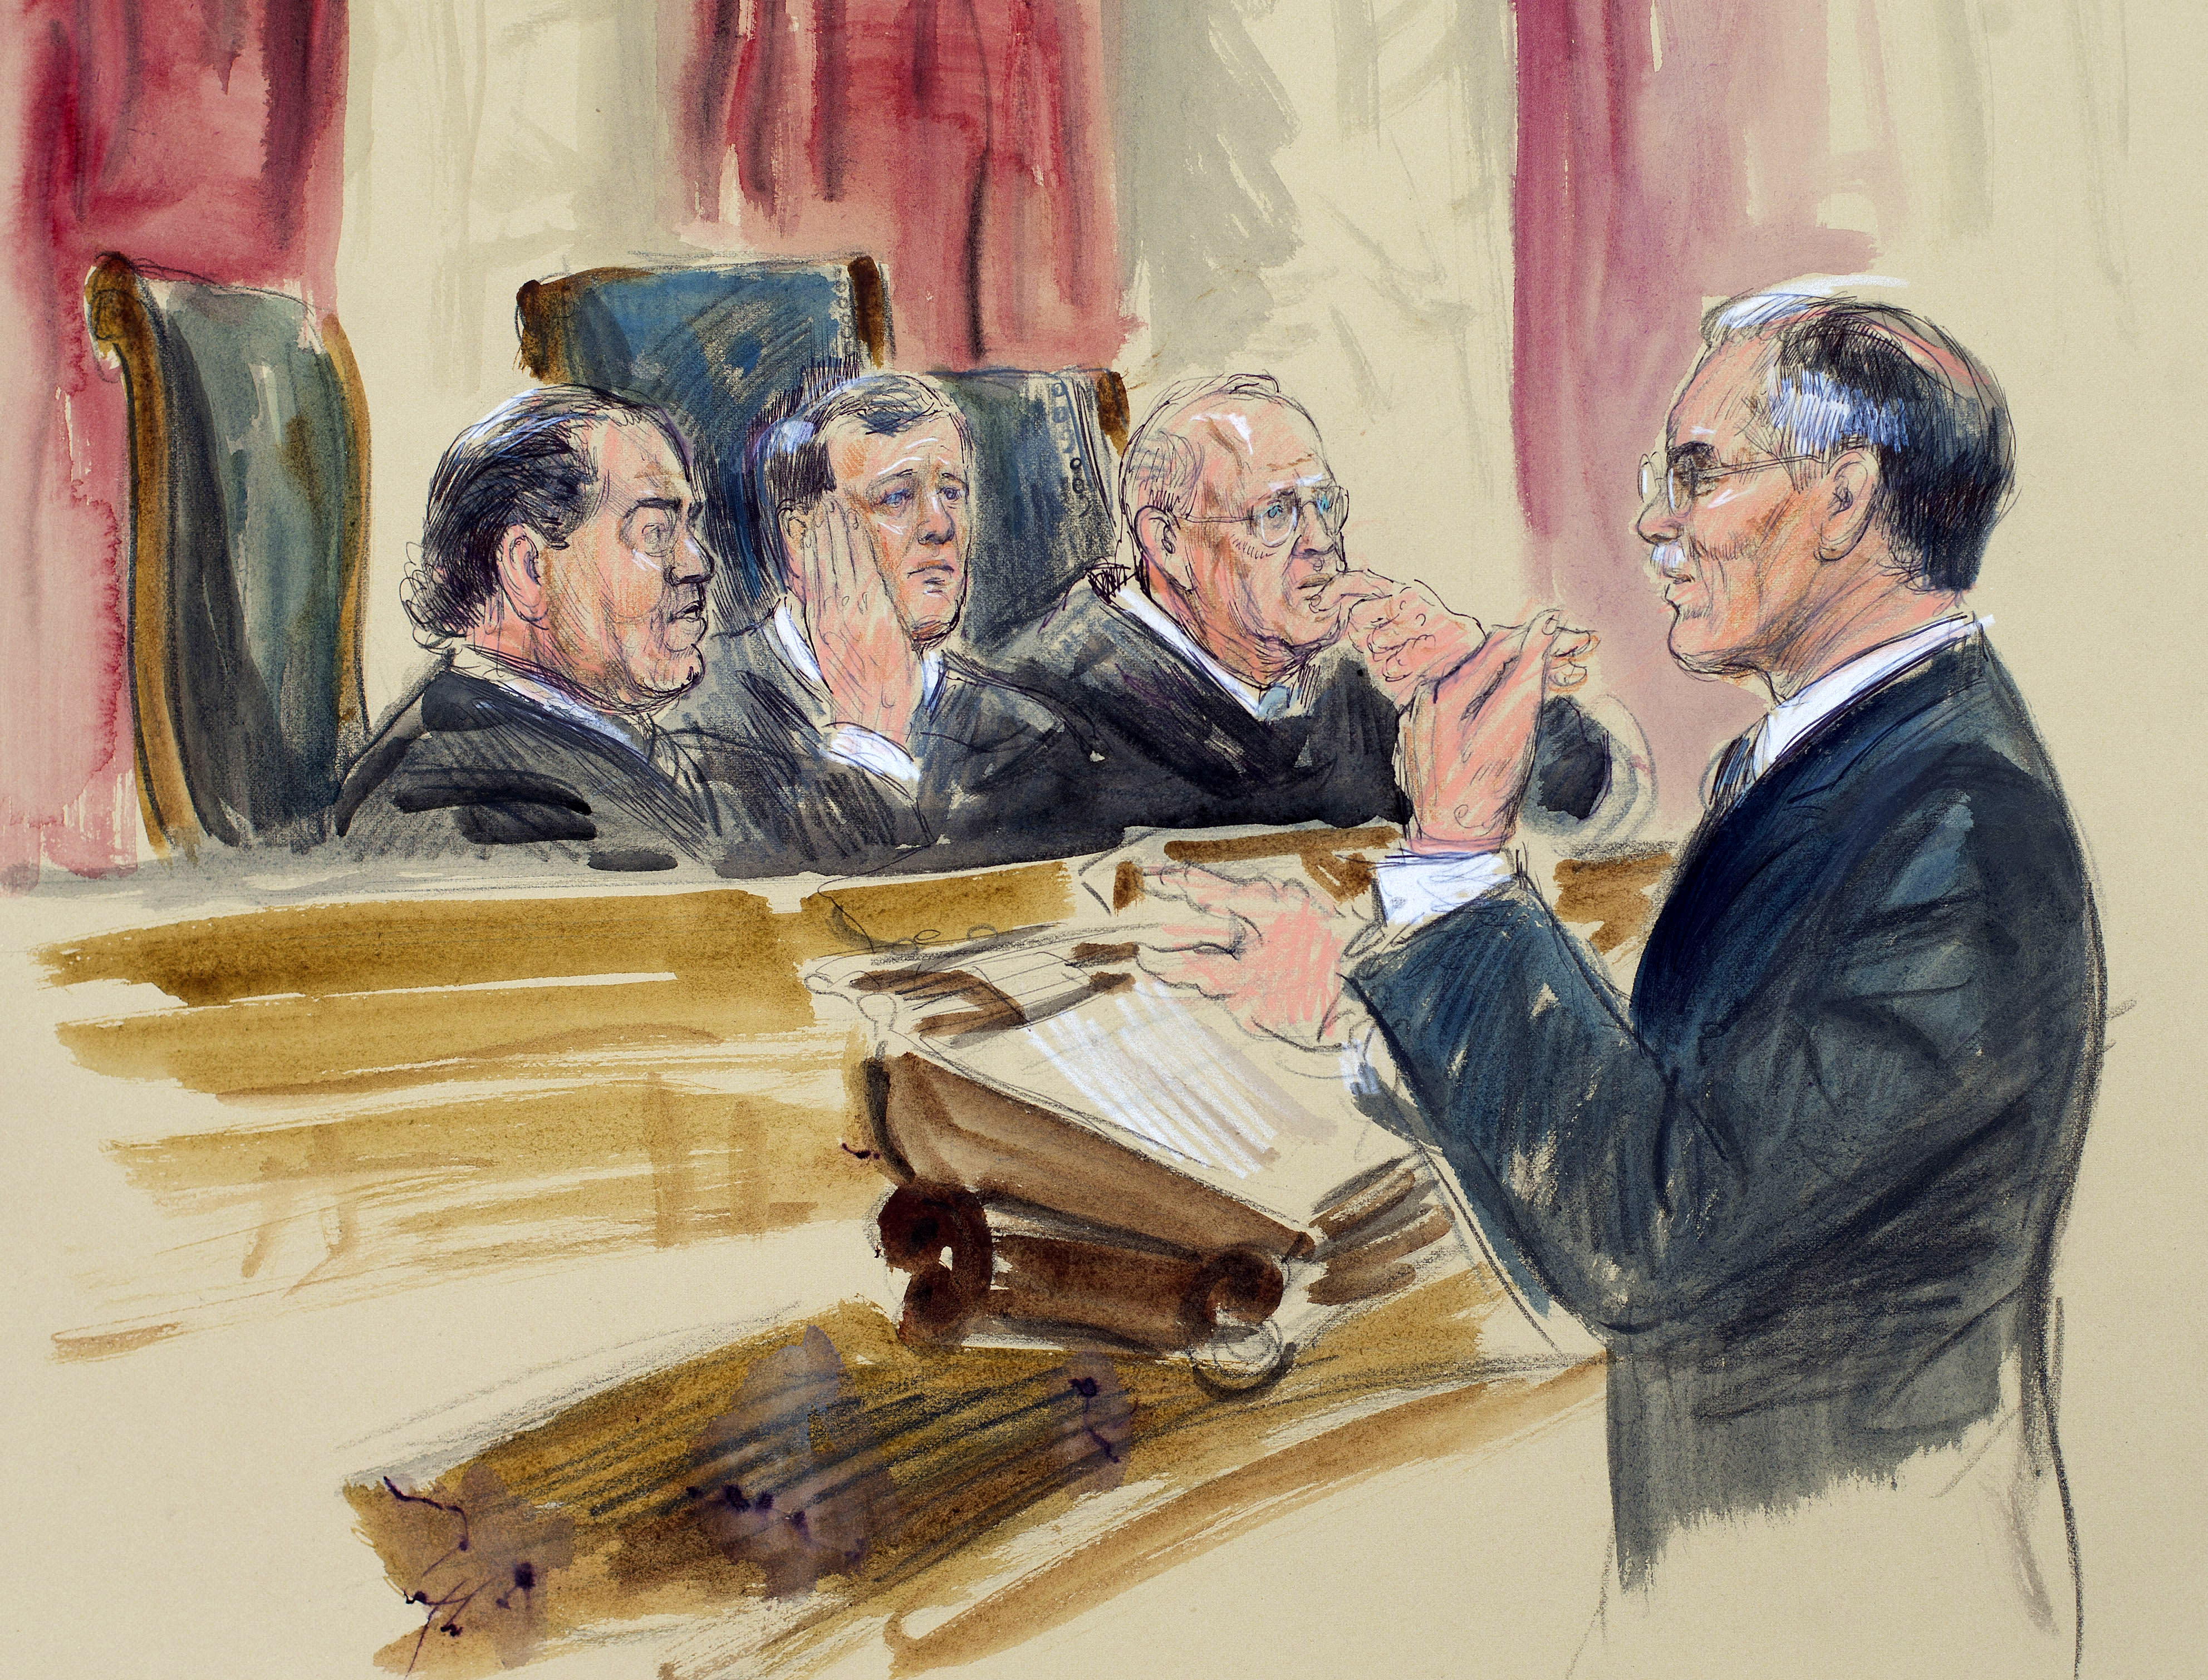 Justices sharply divided over health care law subsidies